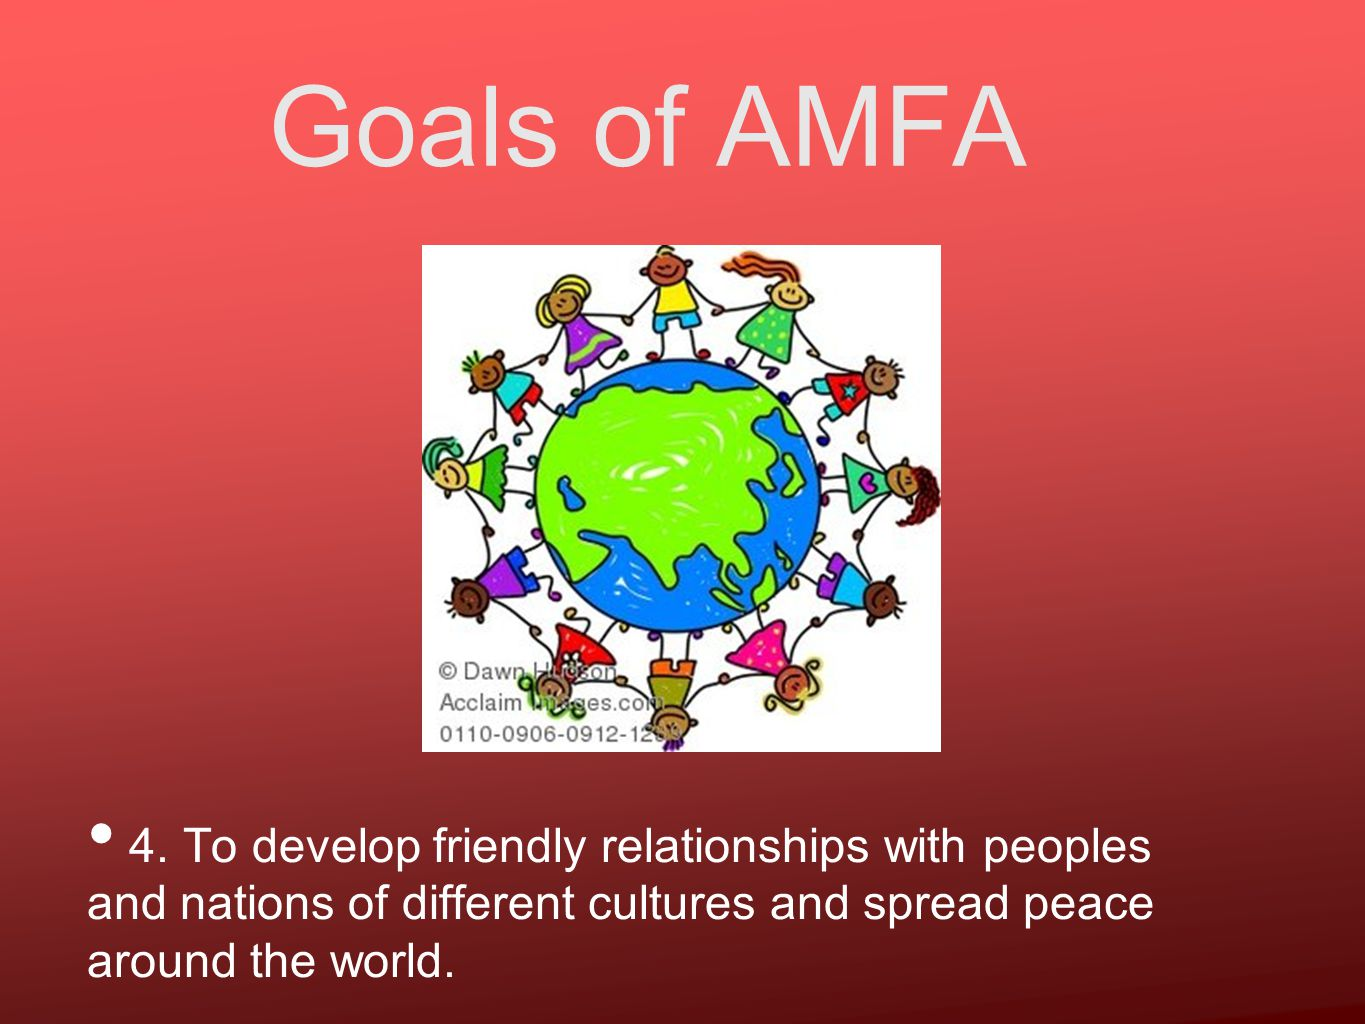 Goals of AMFA 4. To develop friendly relationships with peoples and nations of different cultures and spread peace around the world.